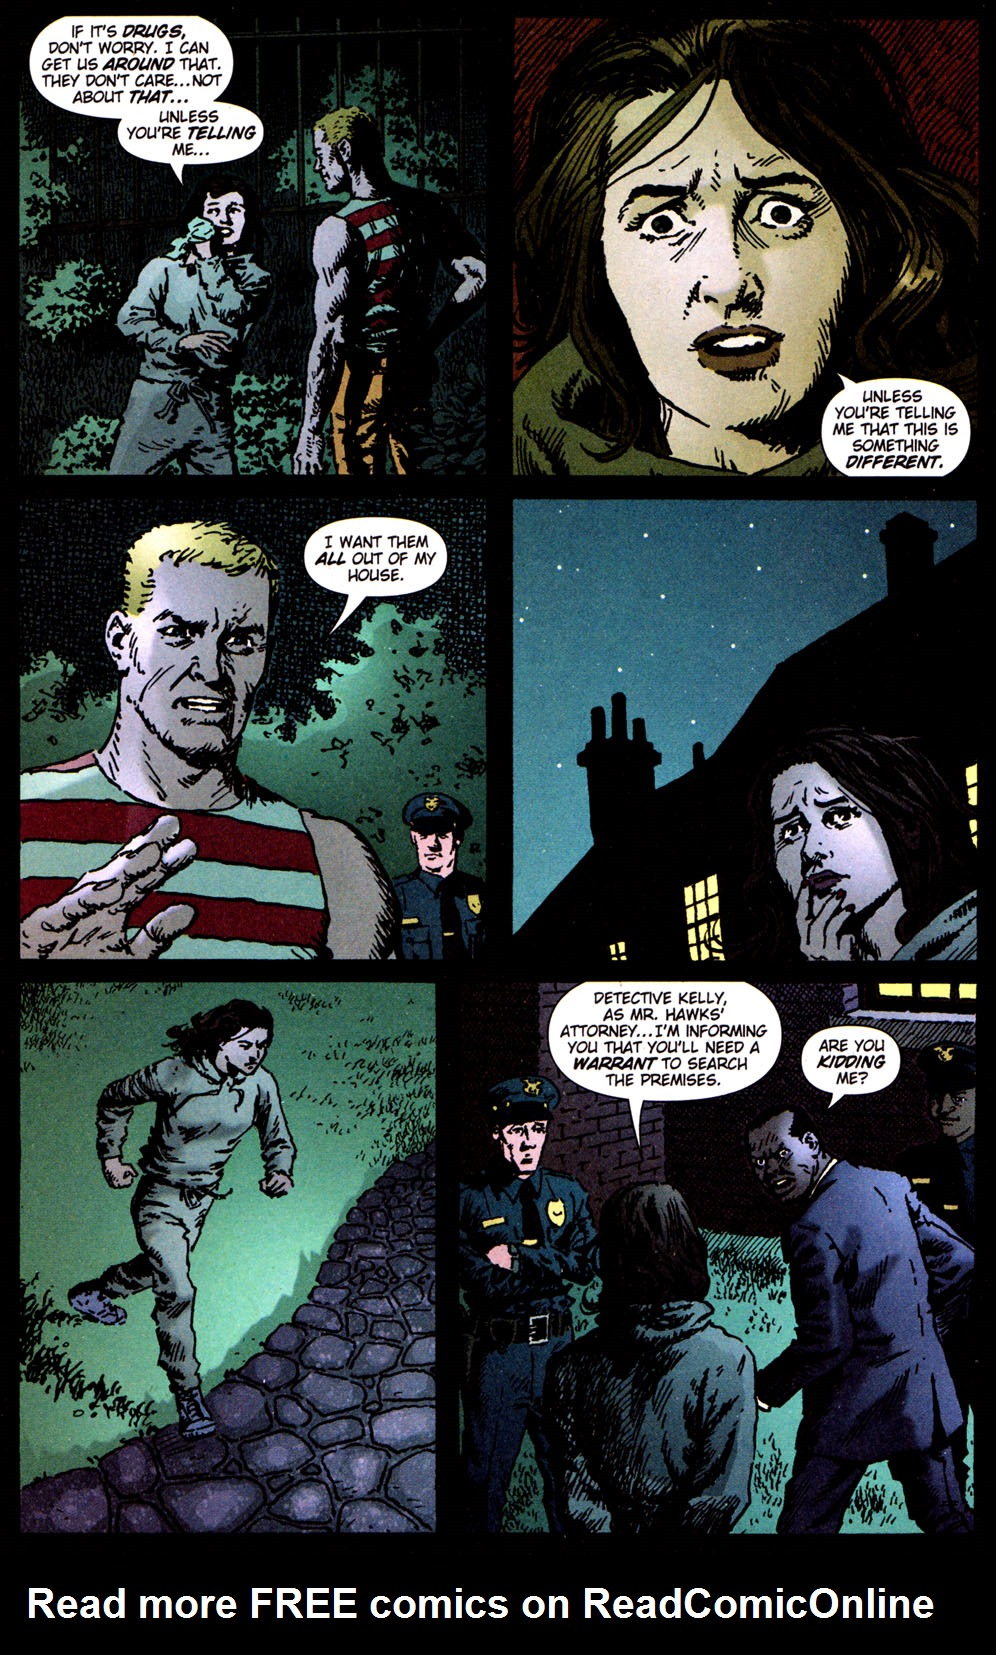 Read online Caper comic -  Issue #5 - 22